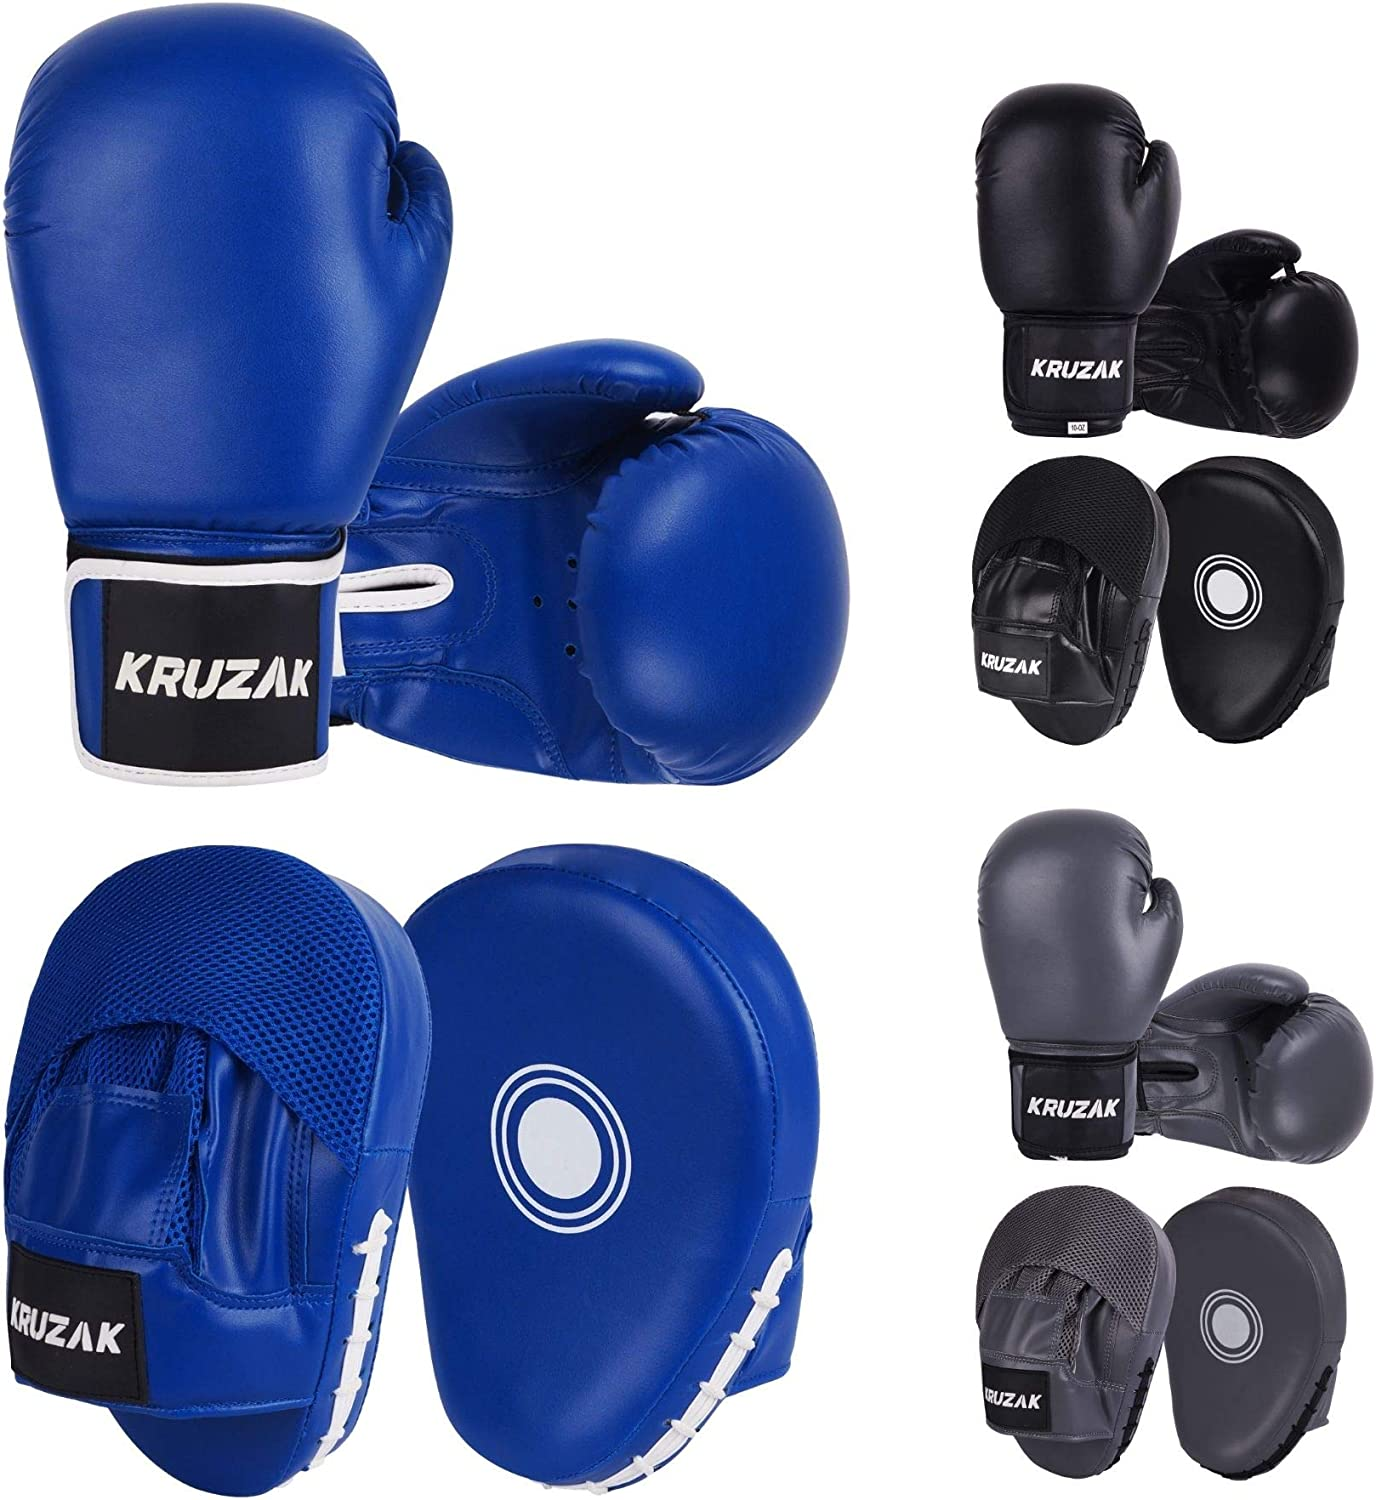 Kruzak Plain Price reduction Focus Mitts and Boxing Kickboxing Gloves an Max 79% OFF for Set